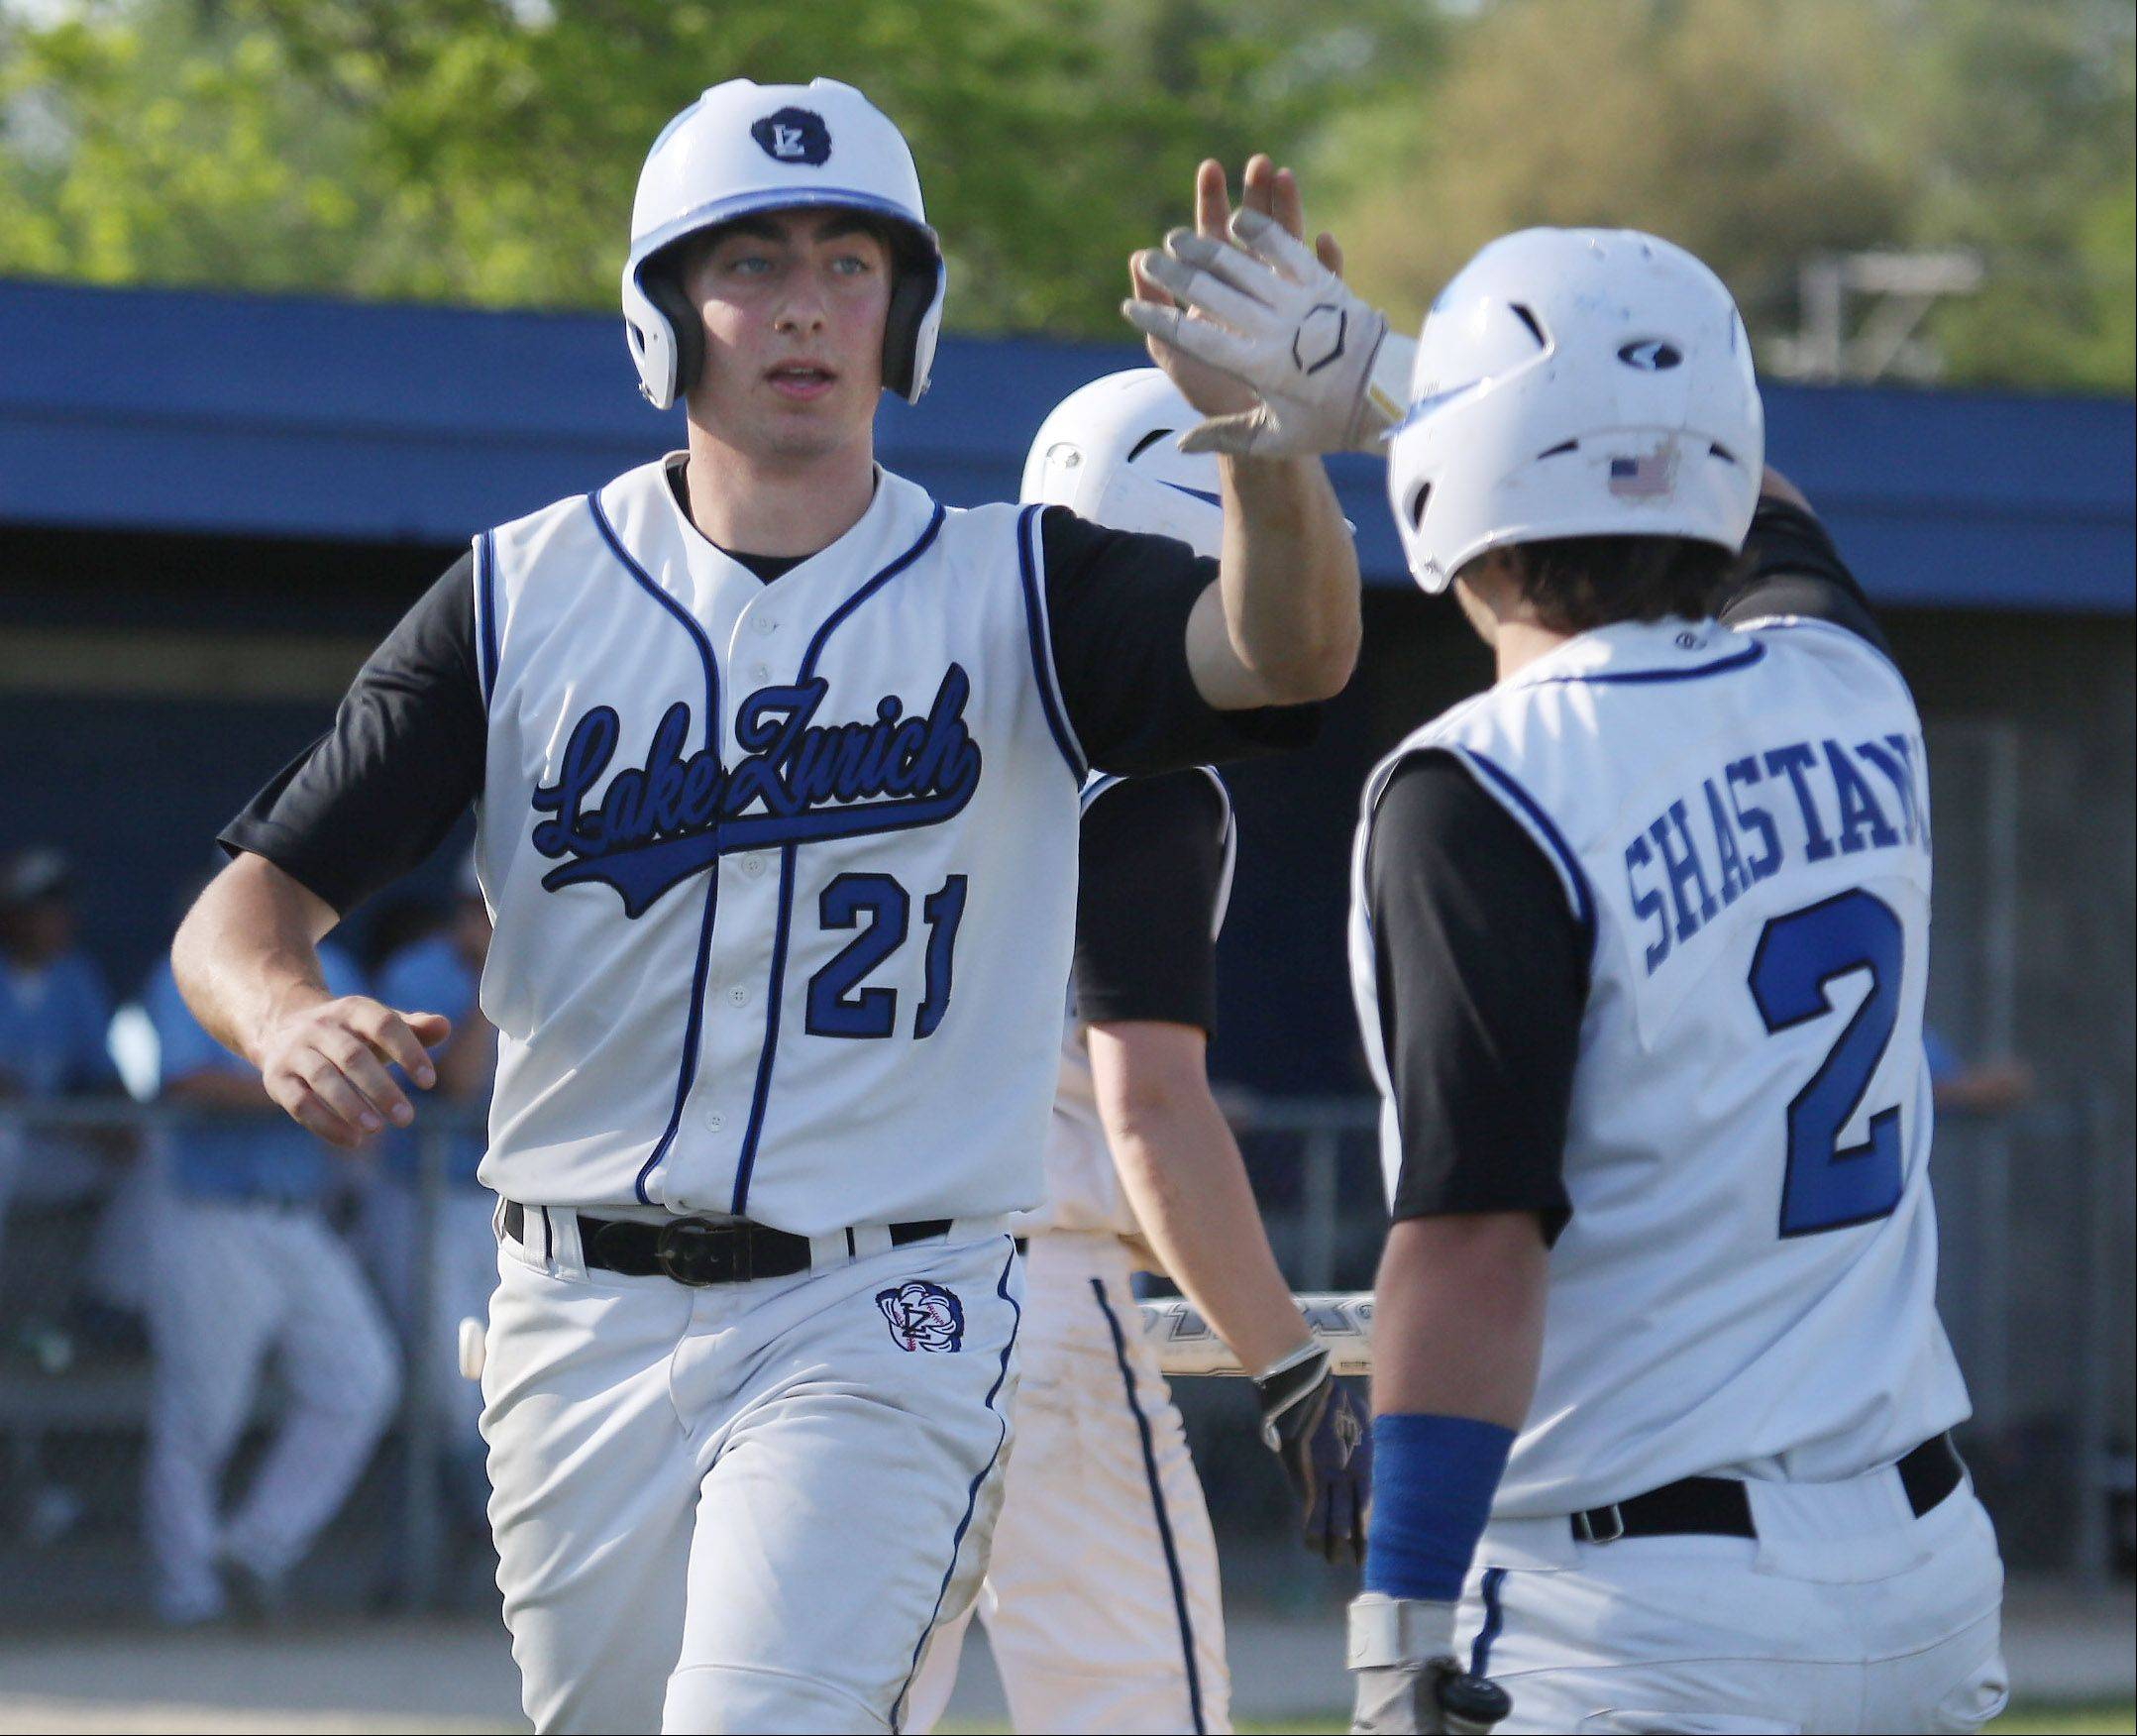 Lake Zurich hitter Dominic DeMicco is congratulated by teammate Mike Shastany after scoring in the second inning against Prospect in Class 4A regional play Monday.